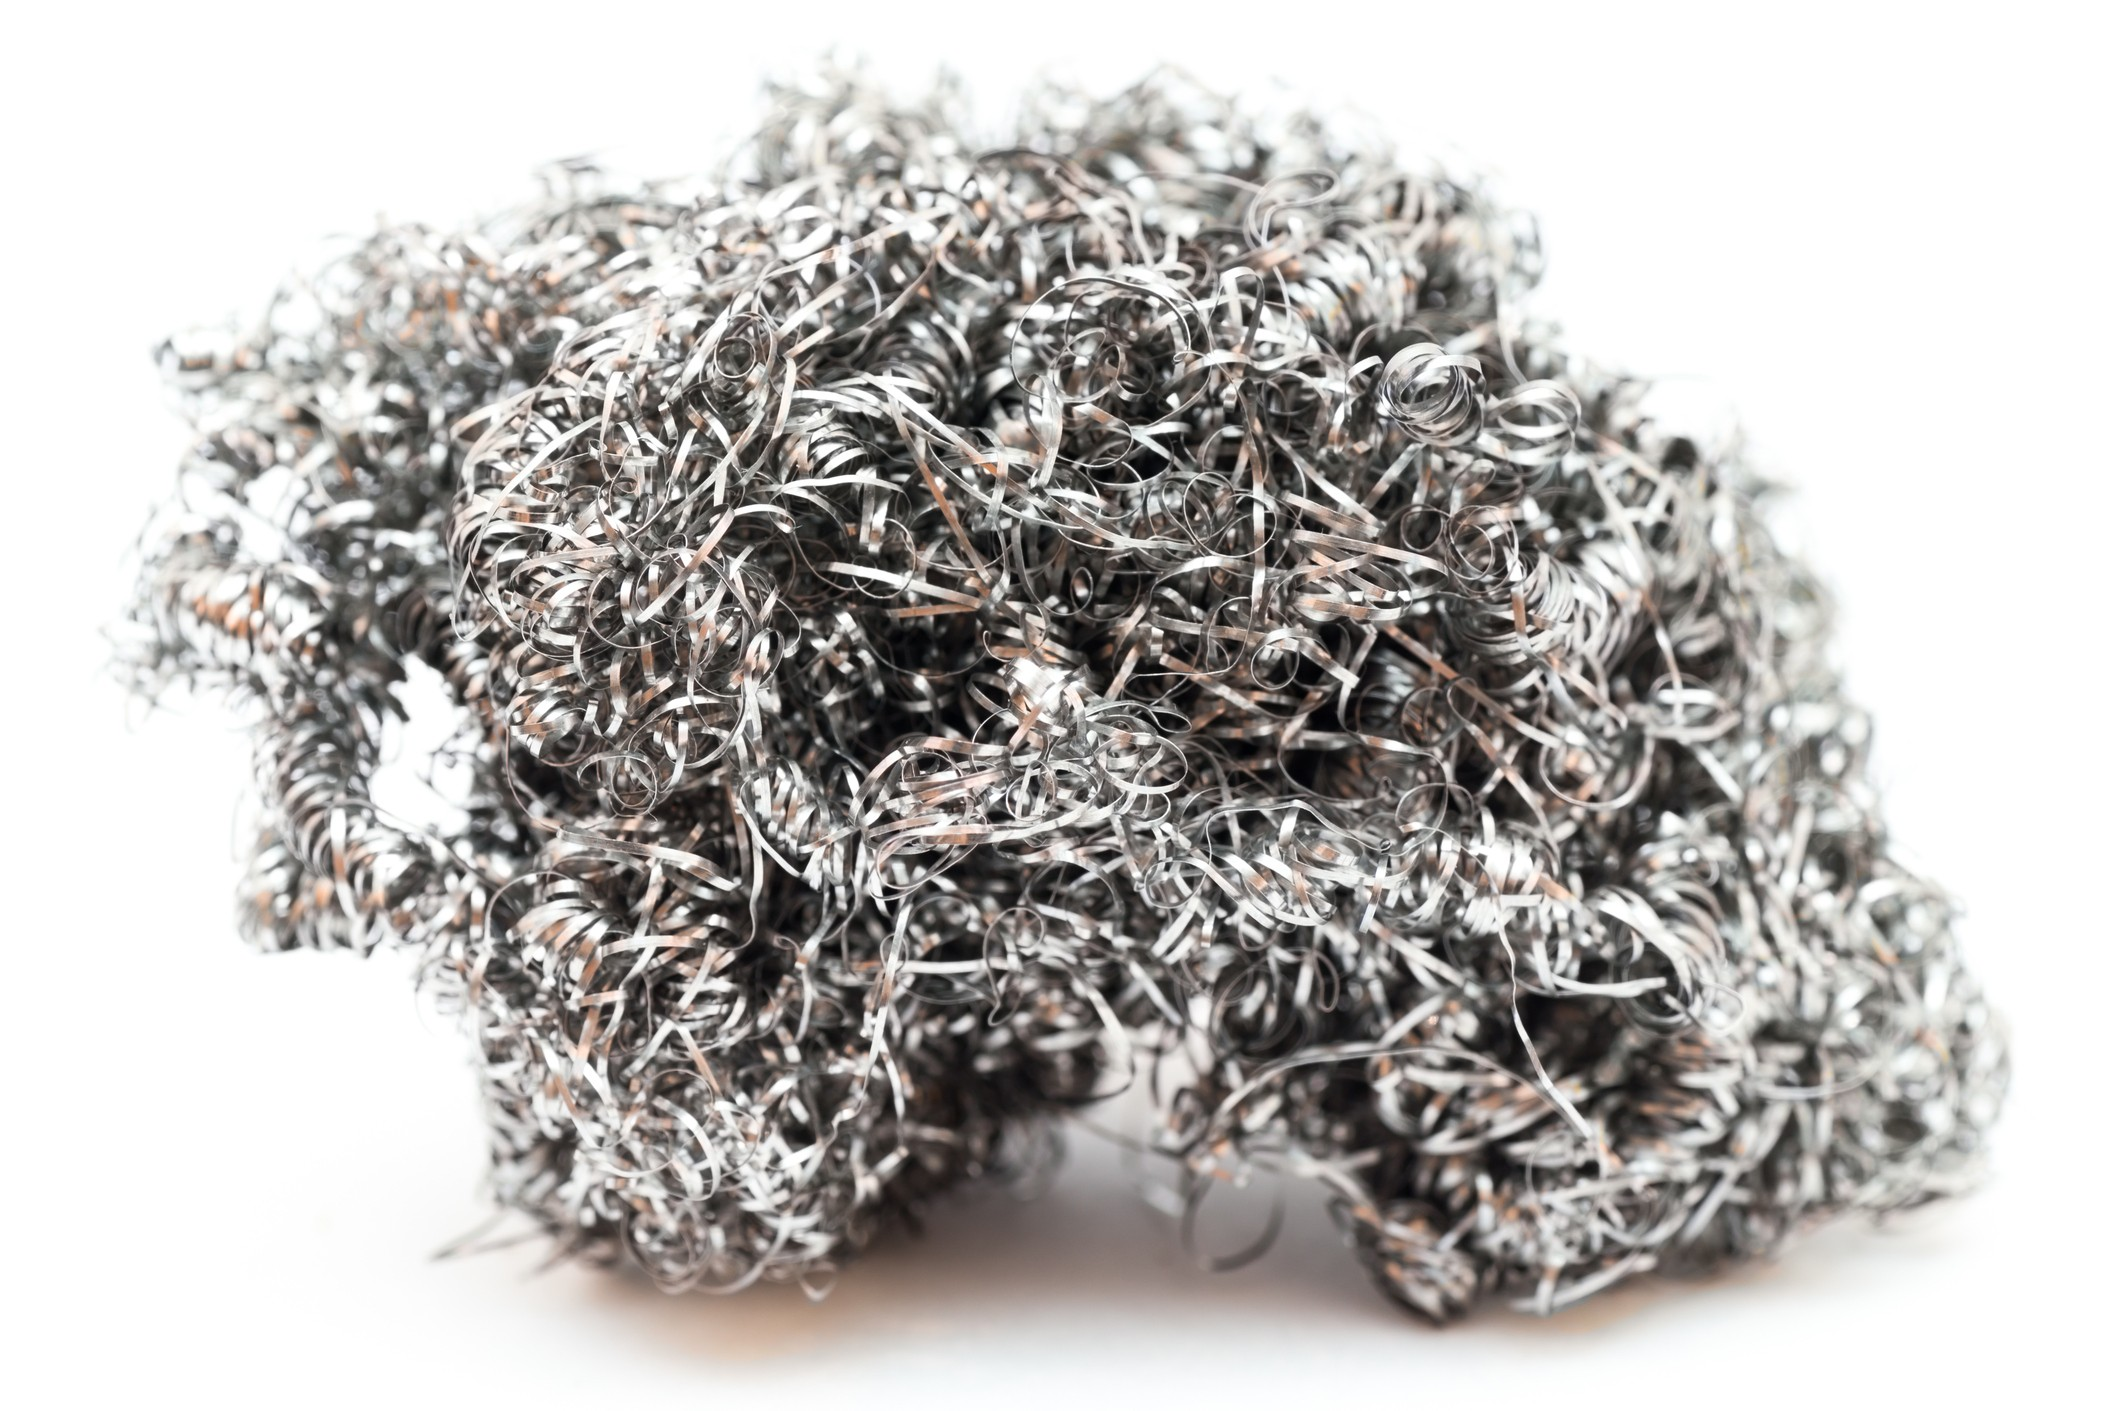 Brillo pad steel wool on white background.